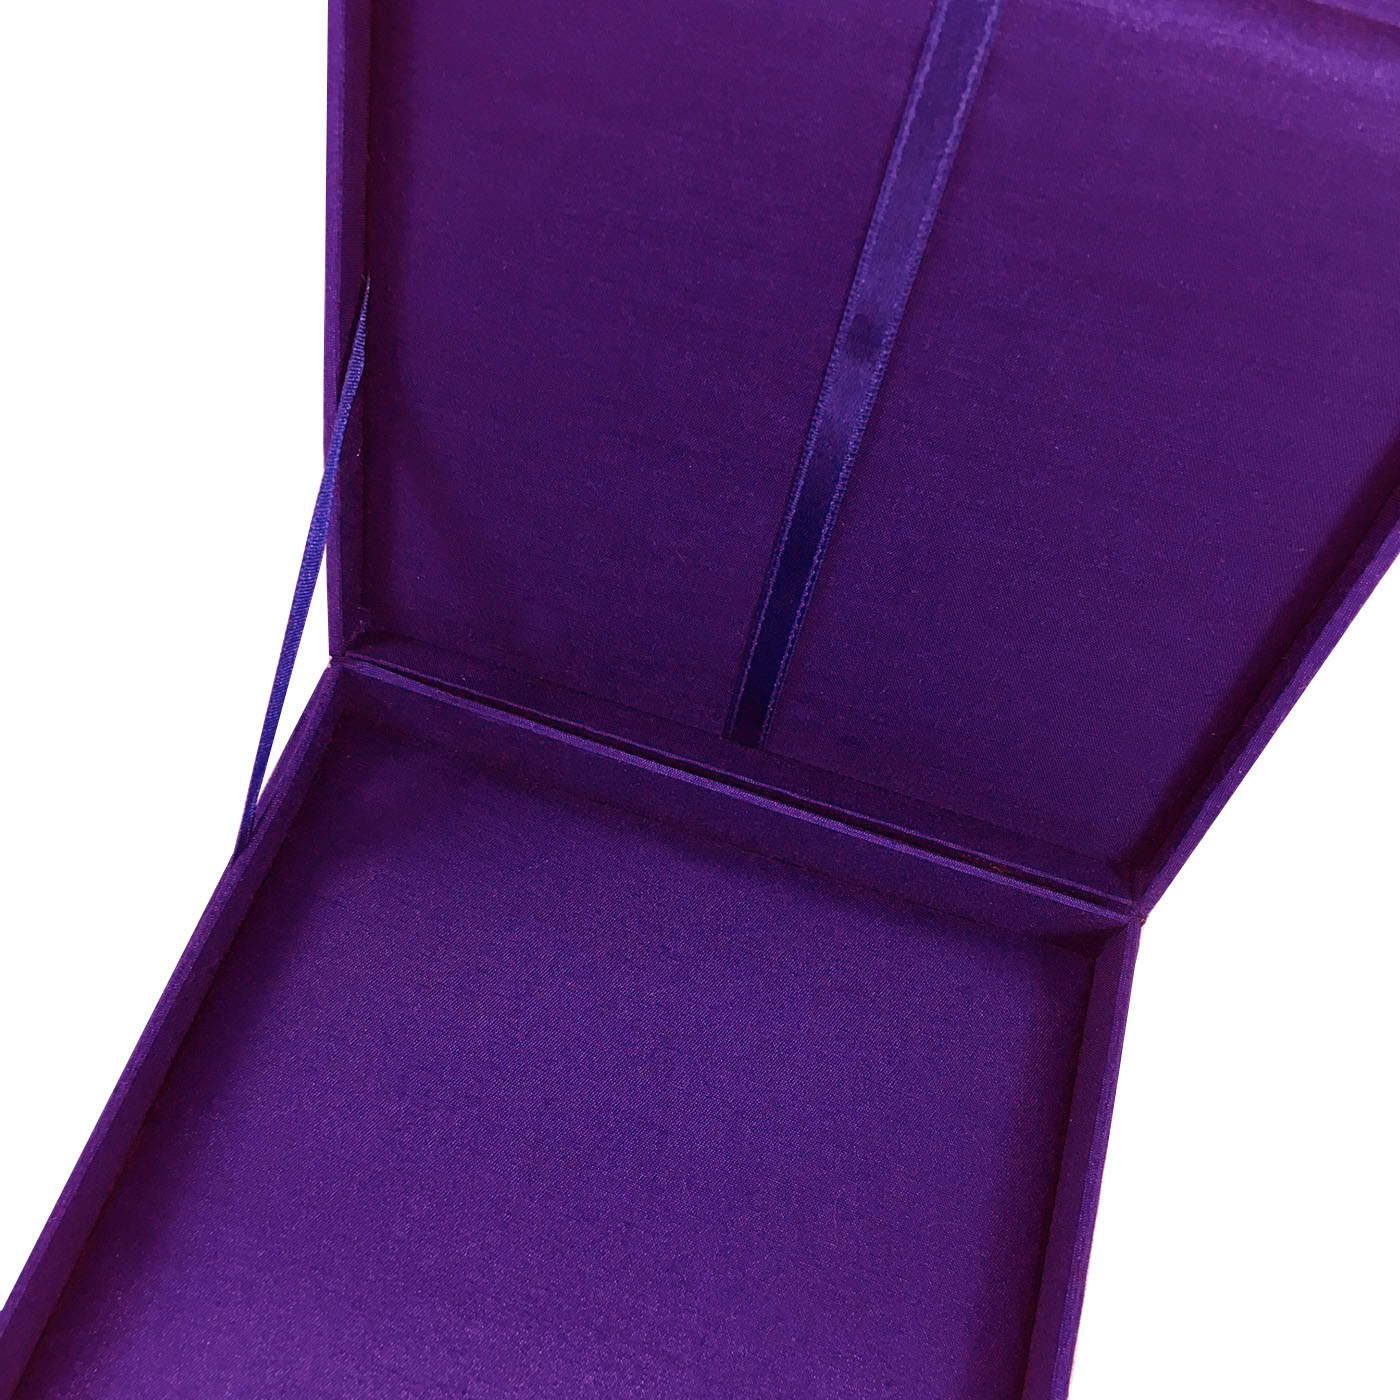 Interior of purple silk invitation box